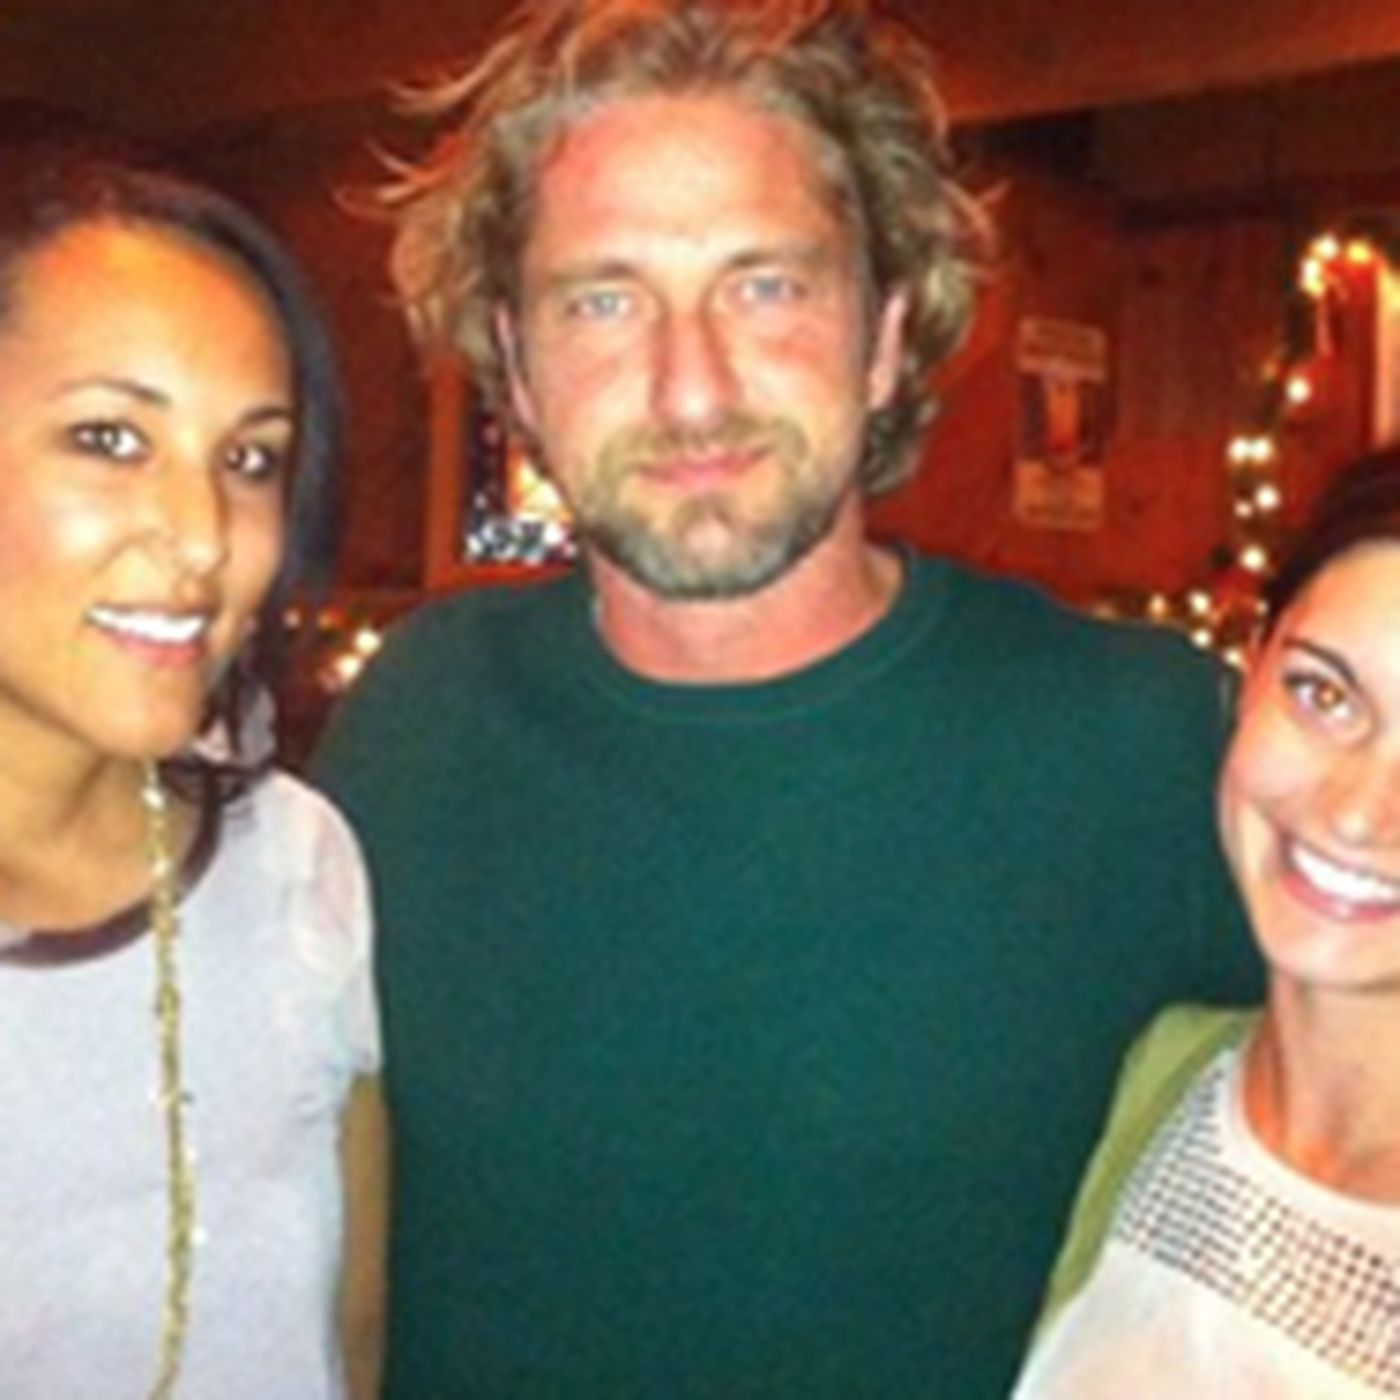 Company Butler gerard butler likes seafood, eats lots of it at half moon